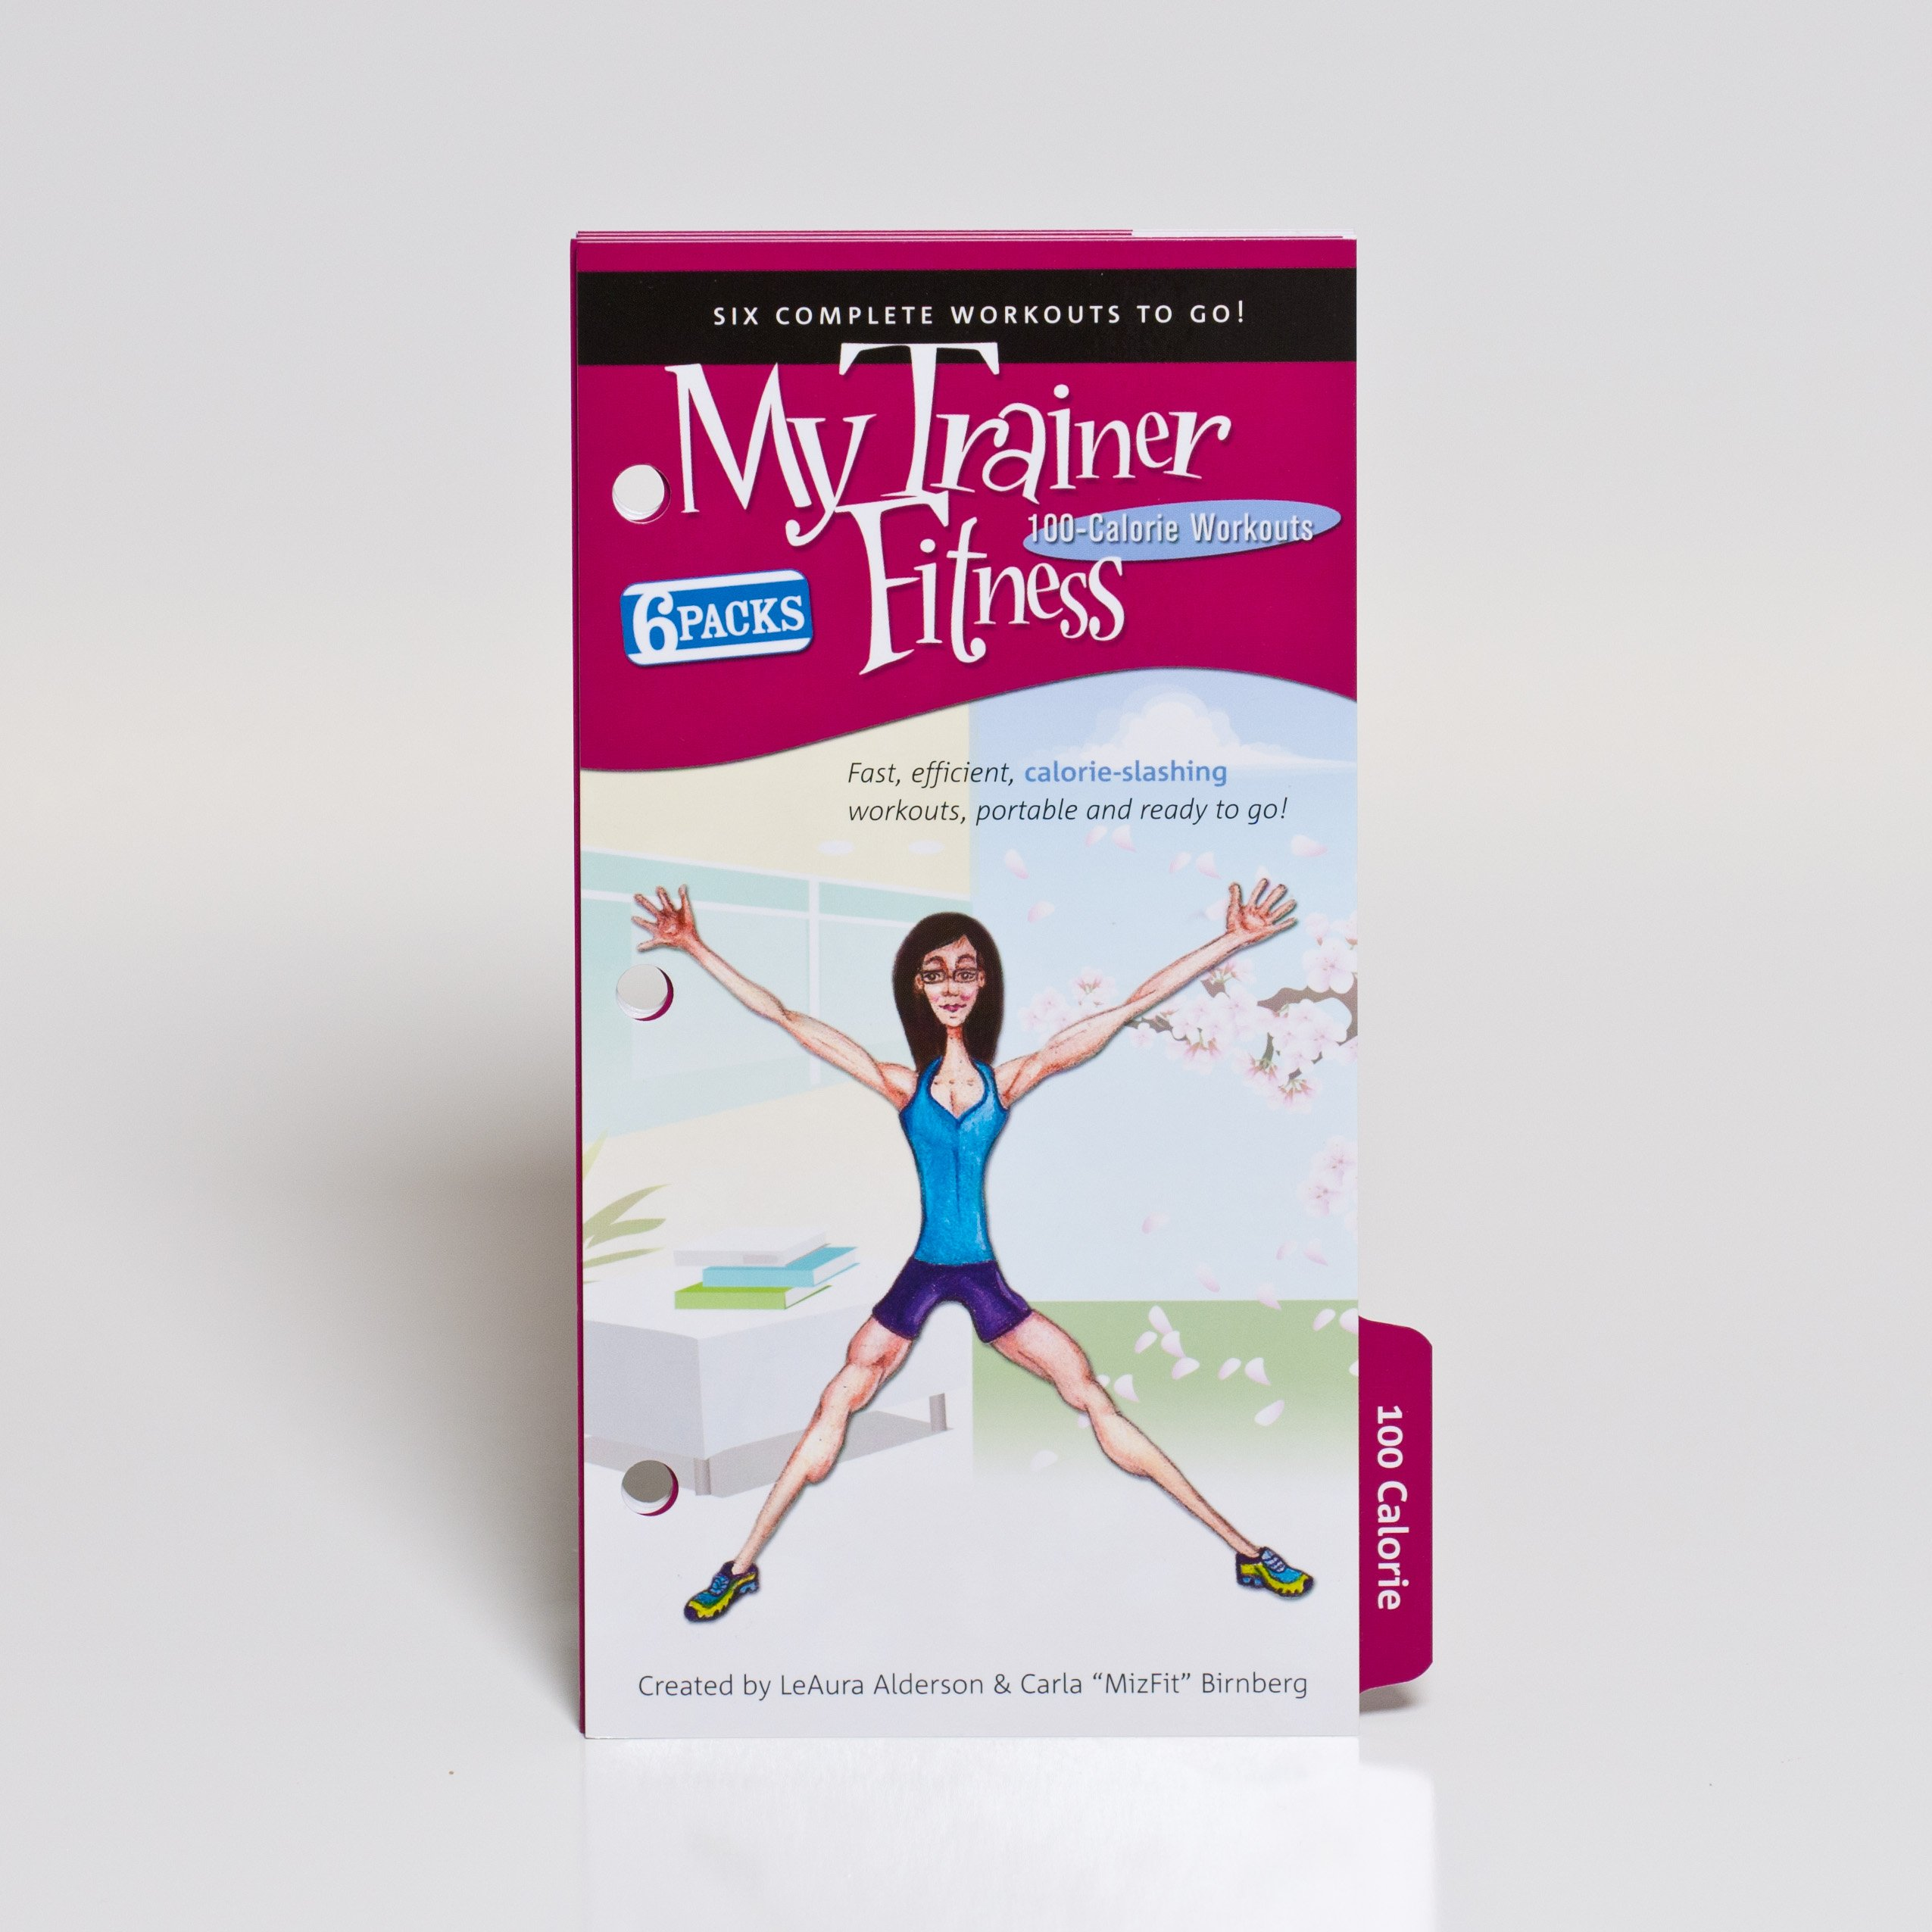 My Trainer Fitness 100 Calorie 6 Pack Workout Plan of six complete workouts-to-go